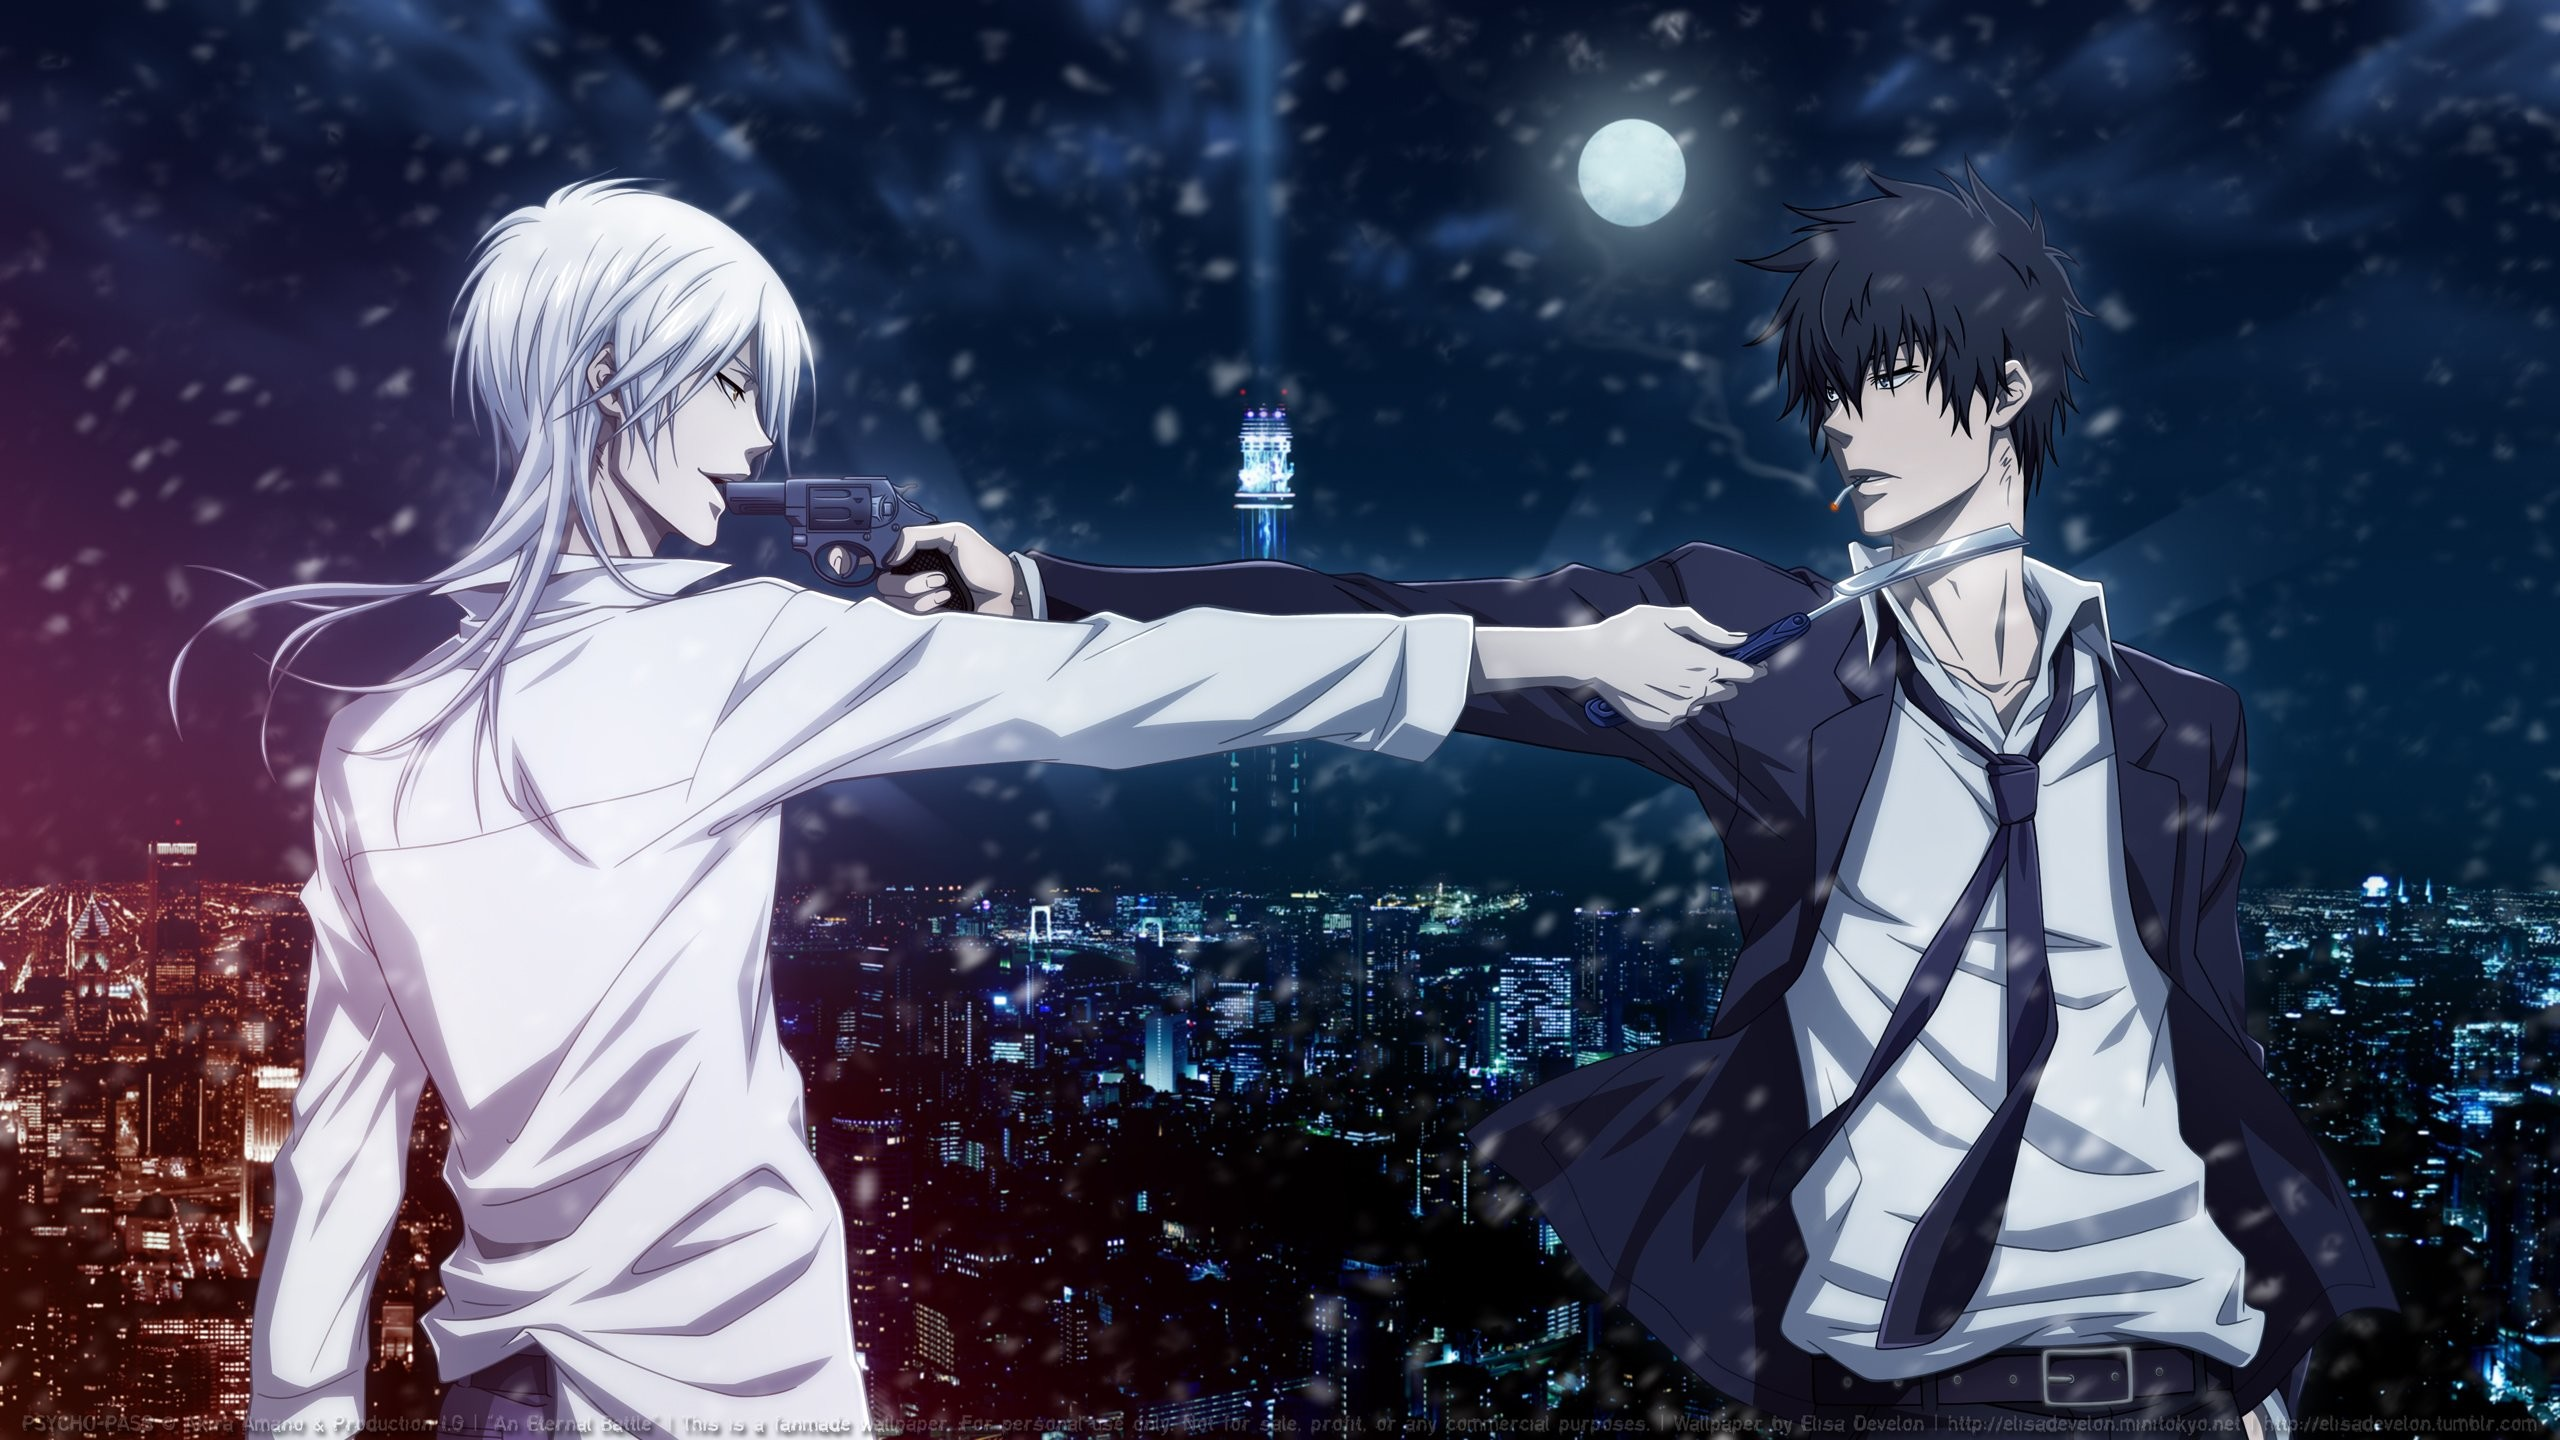 Psycho-Pass Anime Wallpapers HD (36 Photos)